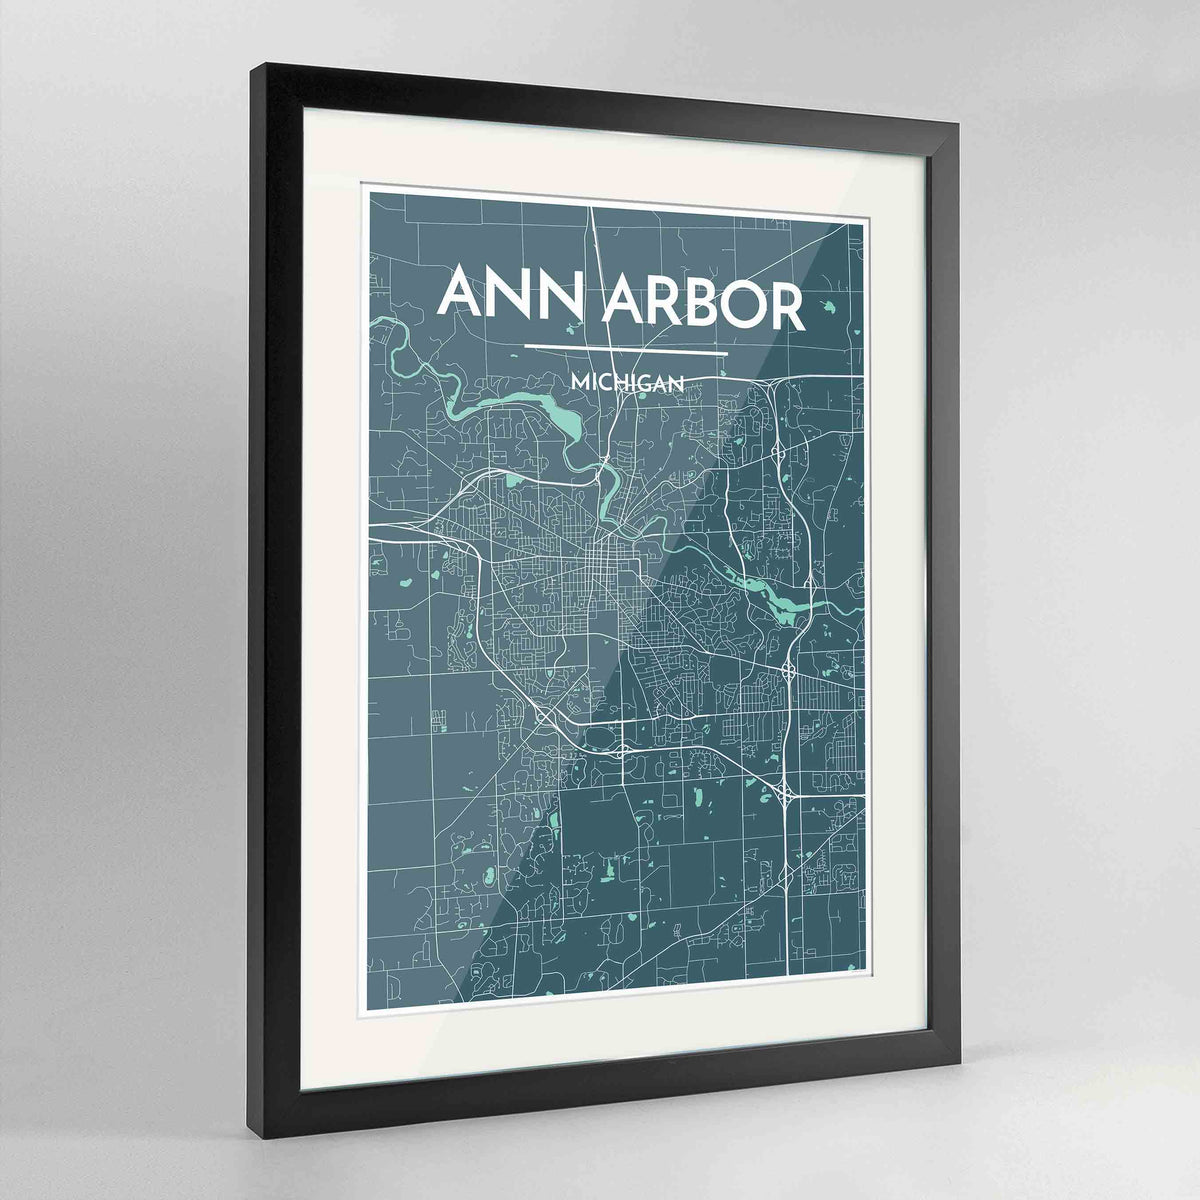 "Framed Ann Arbor Map Art Print 24x36"" Contemporary Black frame Point Two Design Group"